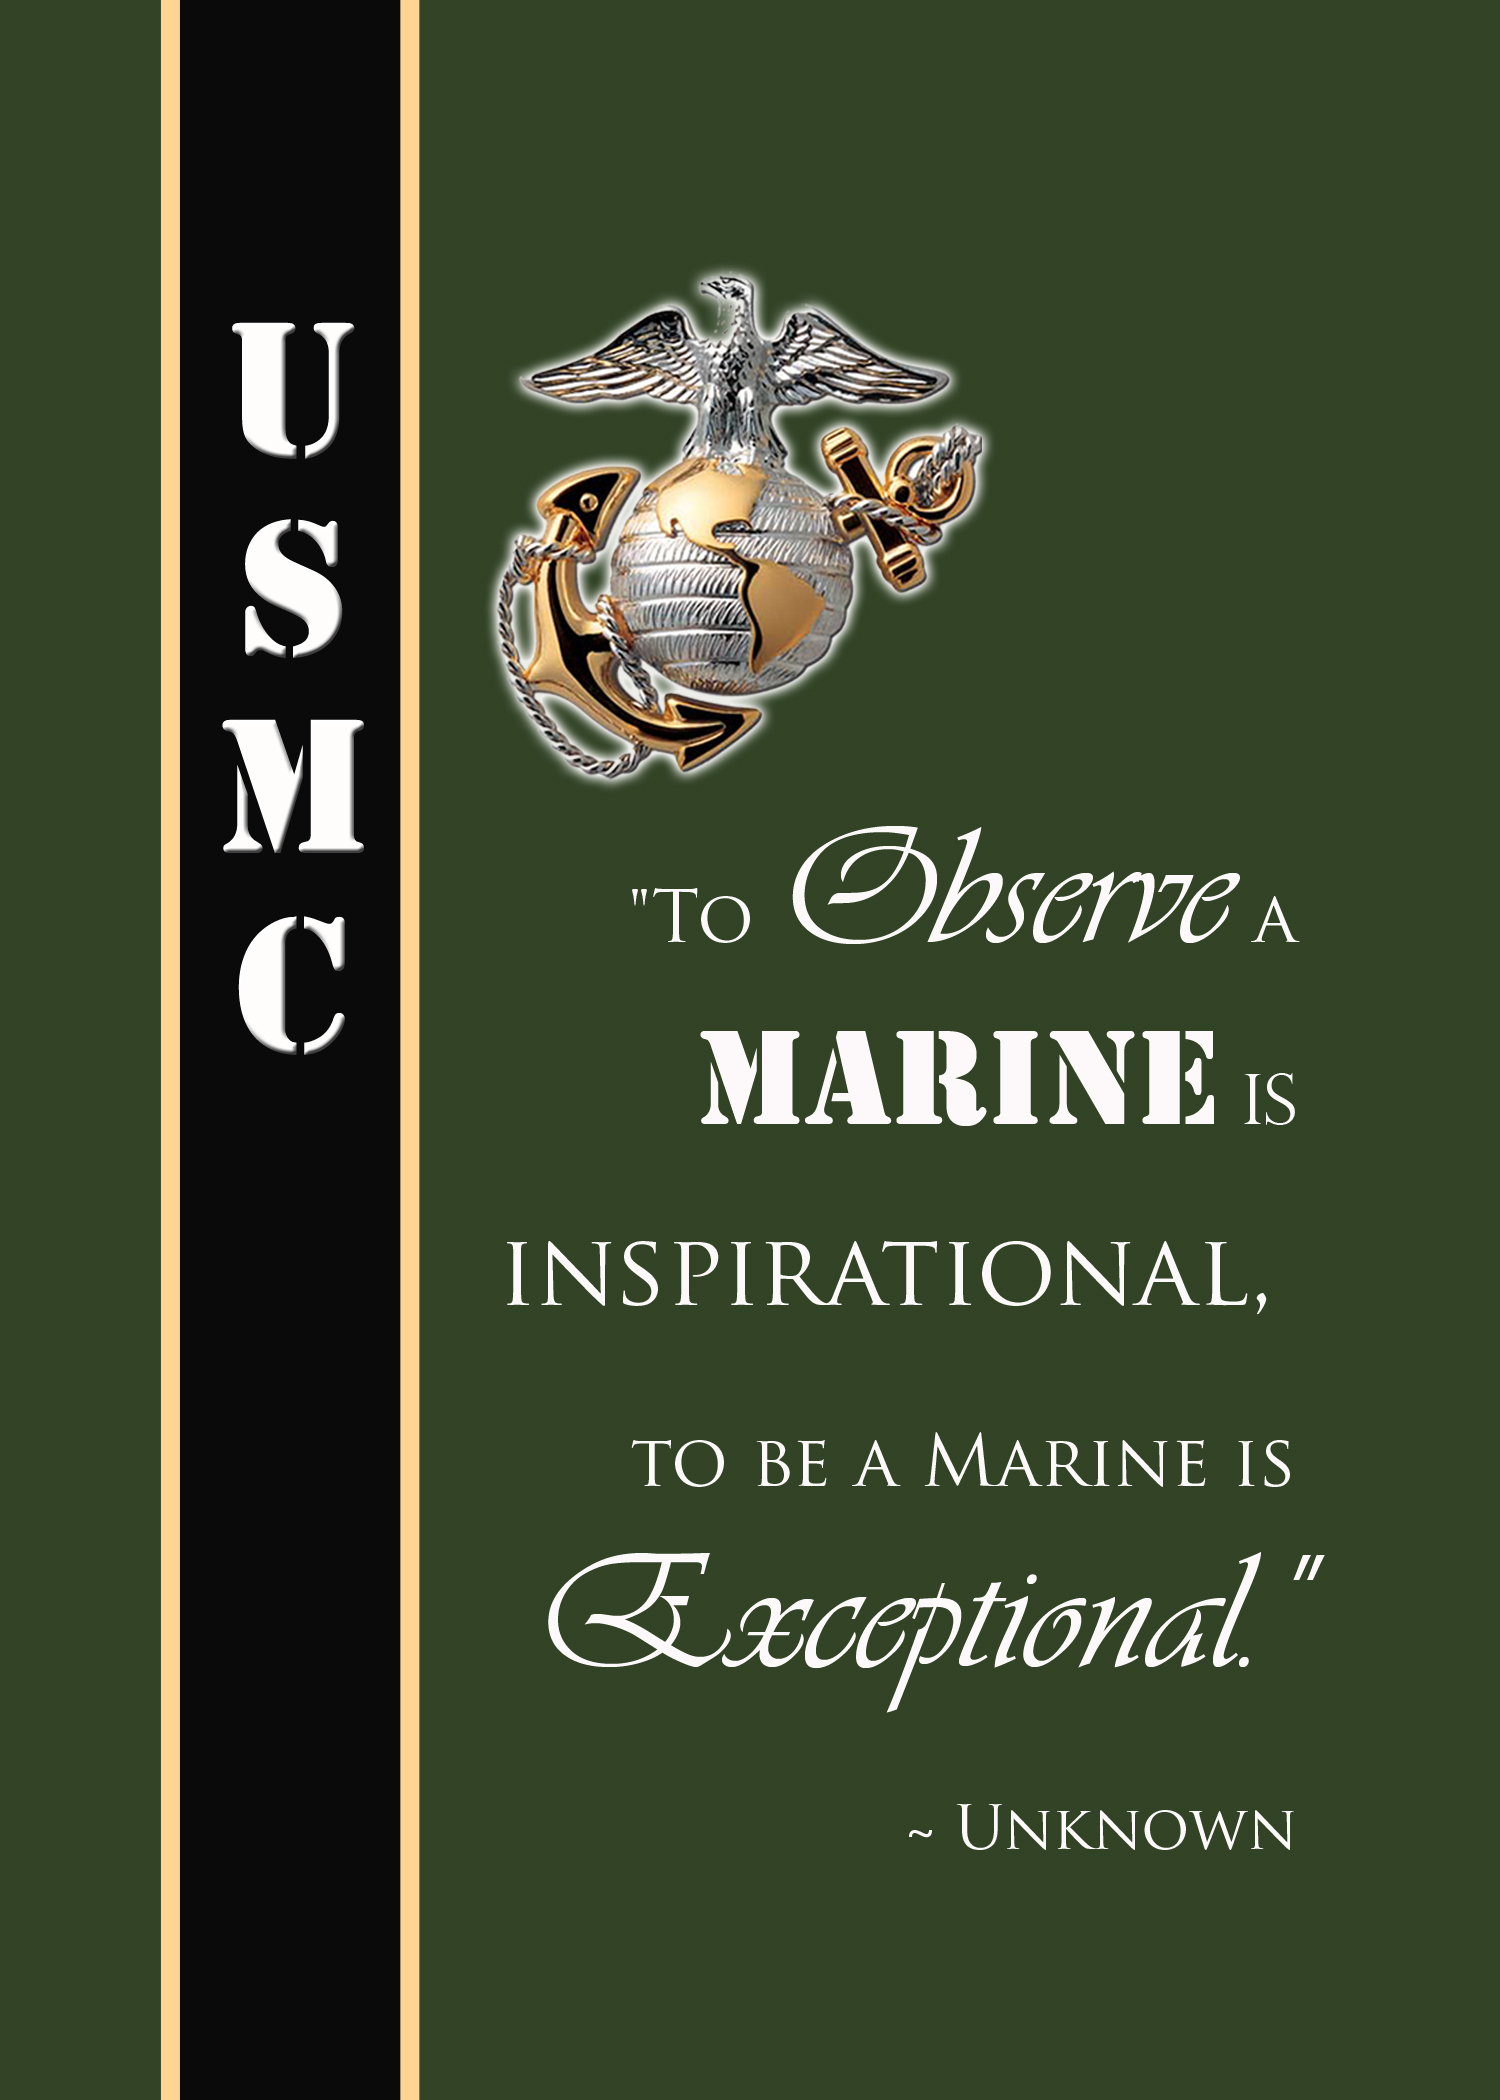 Happy Birthday Usmc Quotes ~ Most famous marine quotes quotesgram